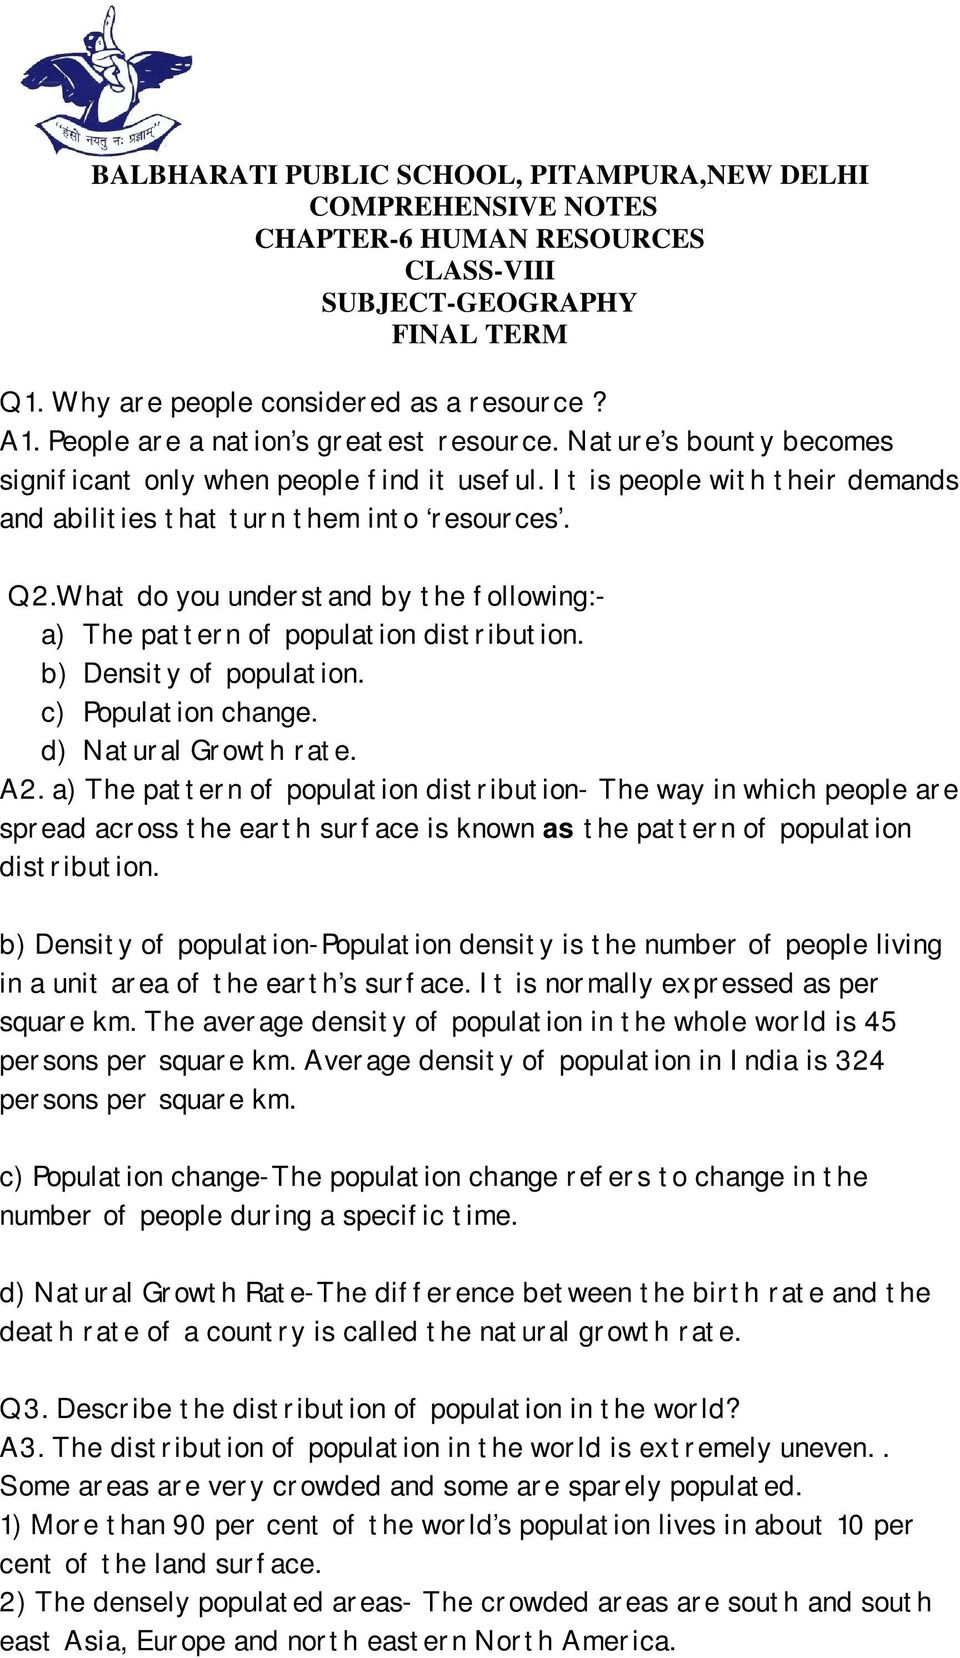 What Do You Understand By The Following A Pattern Of Population Distribution